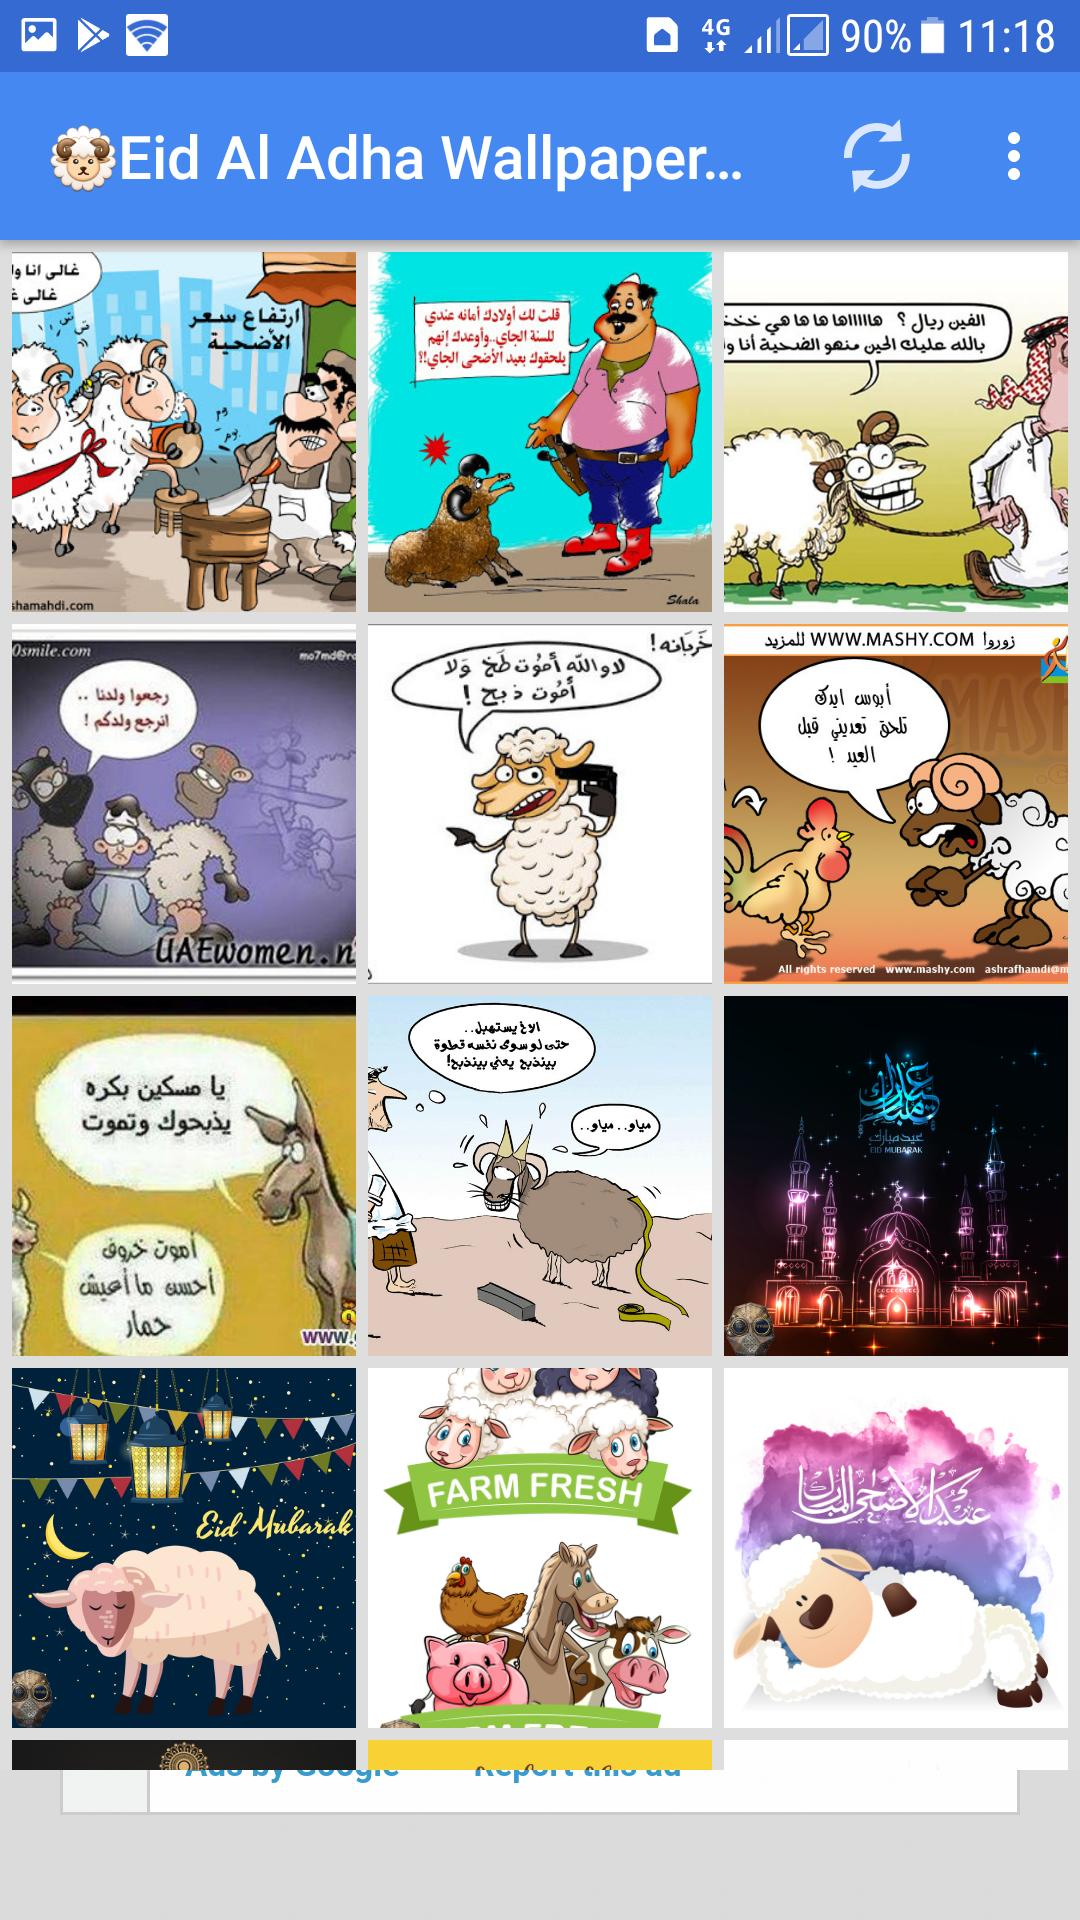 Eid Al Adha Funny Wallpapers 2017 For Android Apk Download